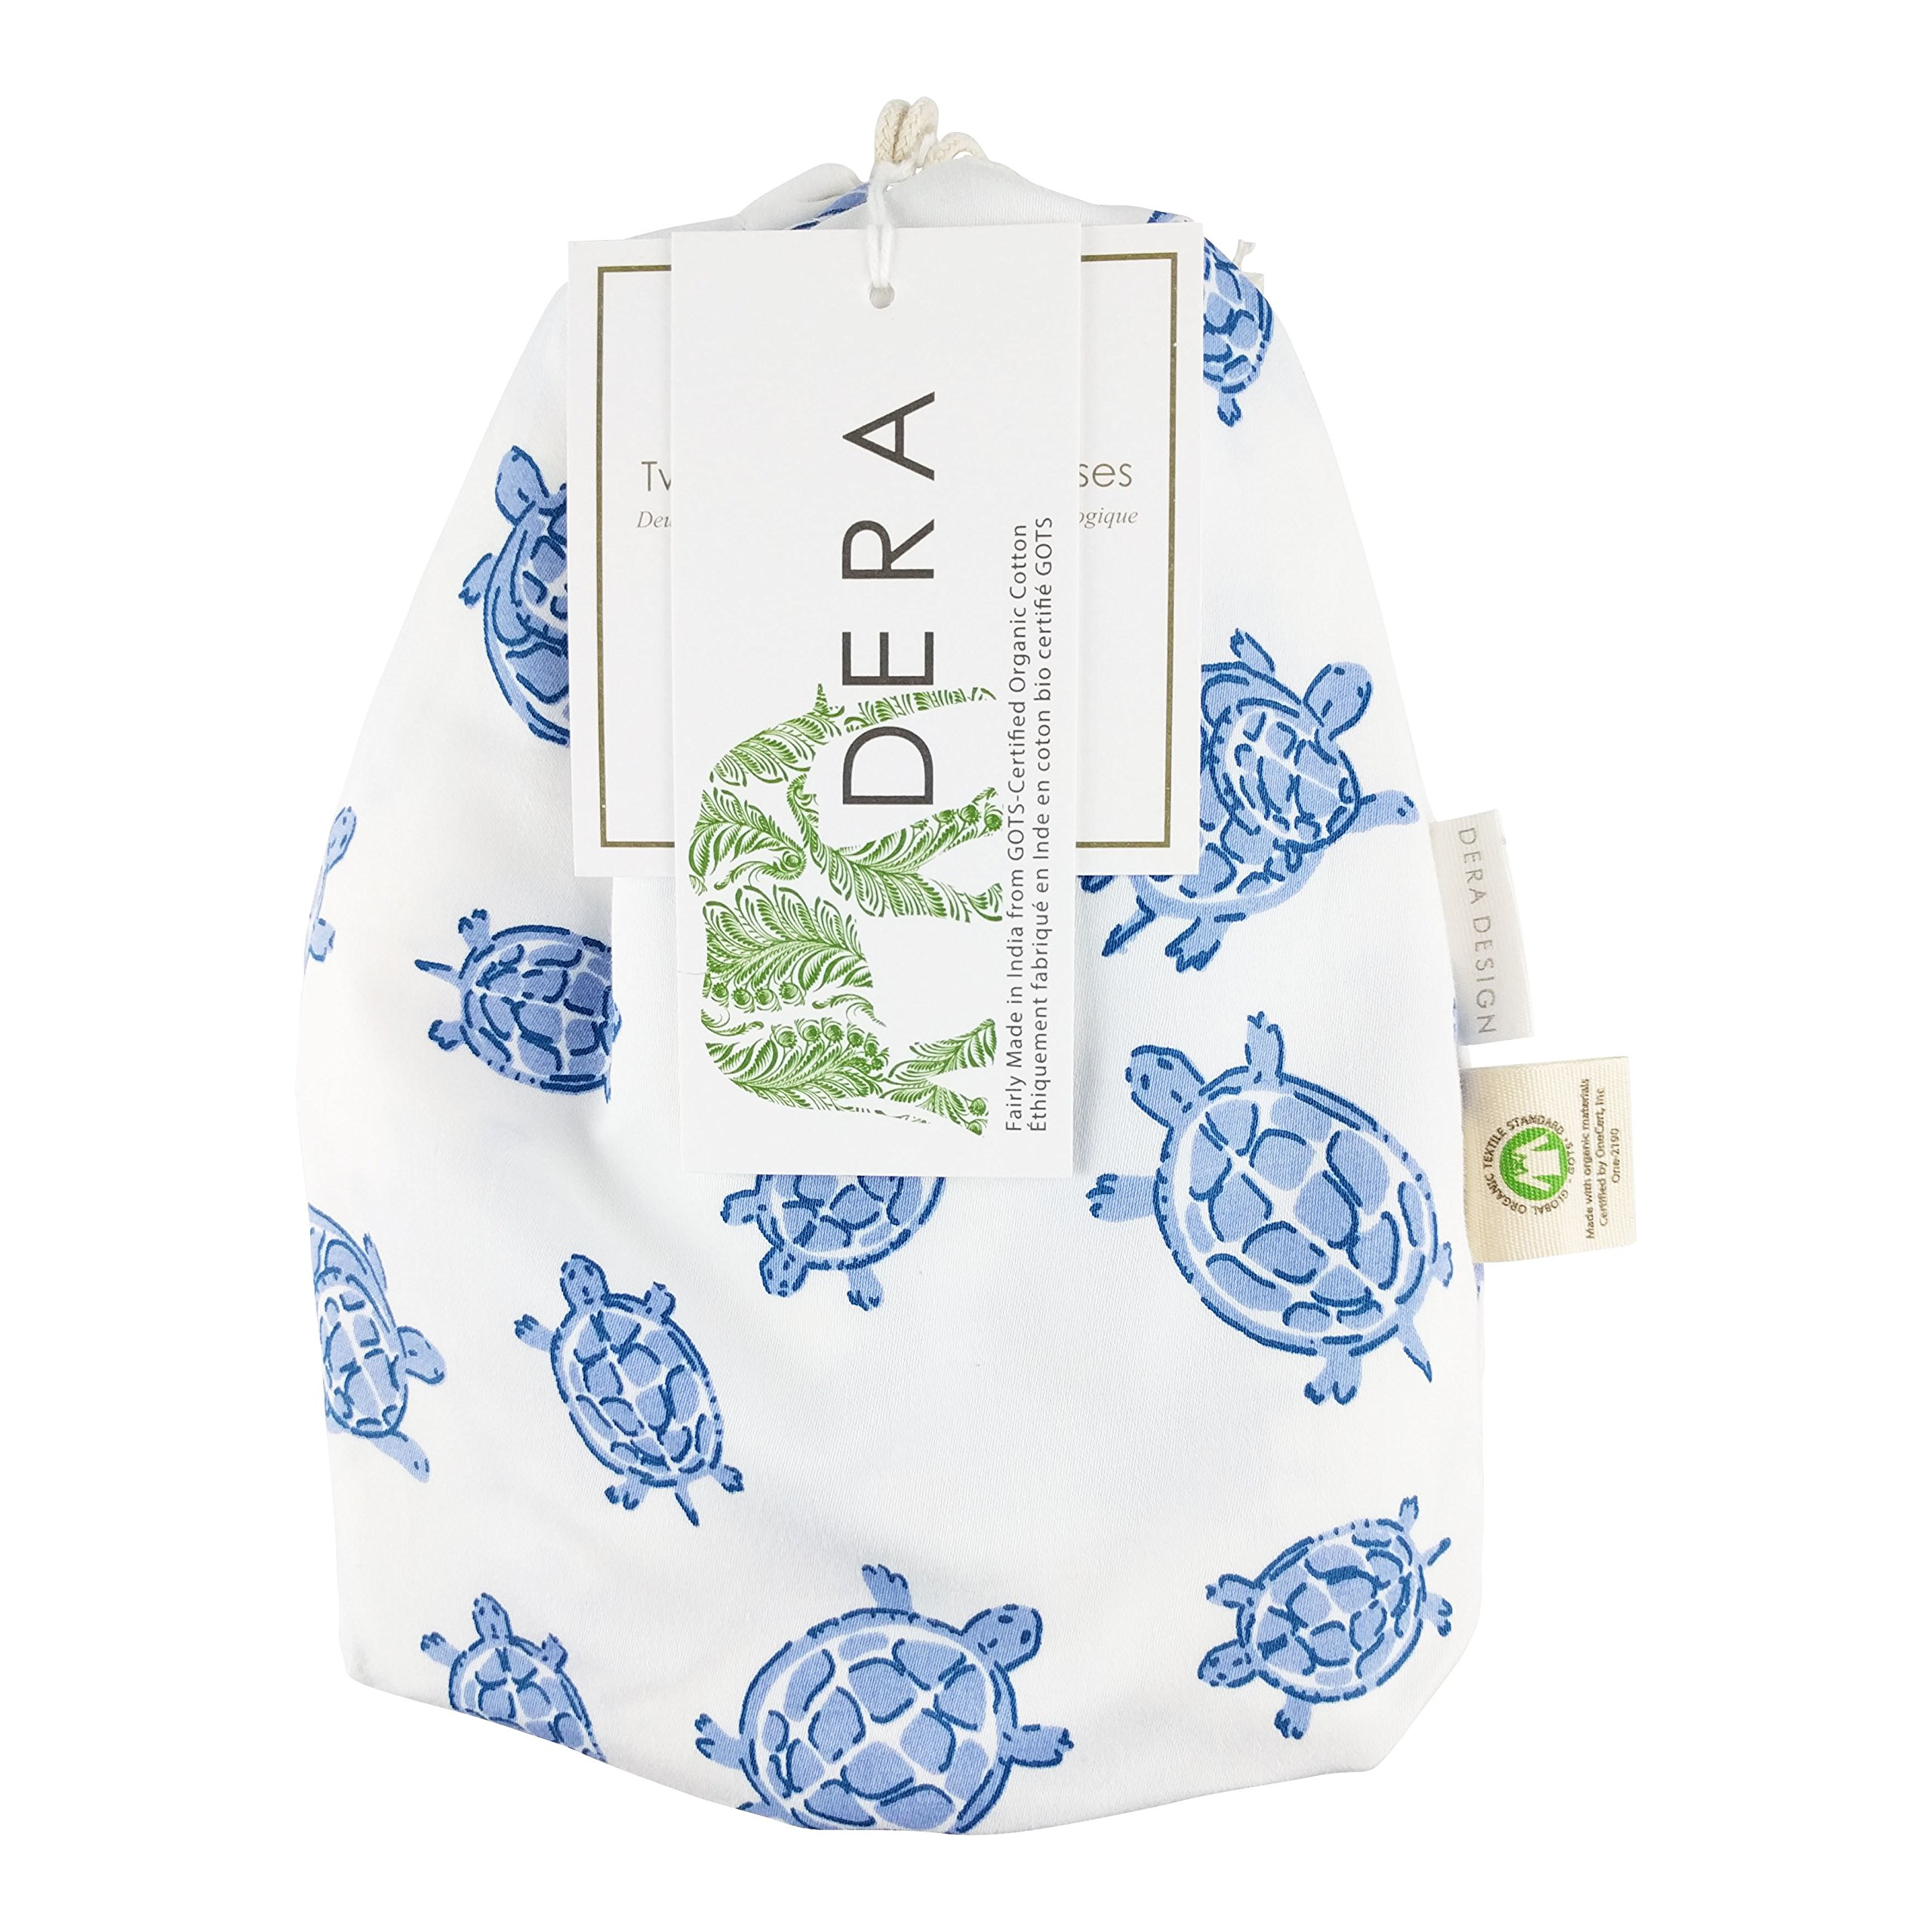 """Organic Cotton Portable Playard Fitted Sheet, 27"""" x 39"""" x 5"""" to Fit Pack 'n Play for Babies & Toddlers, Turtle Print (Blue)"""